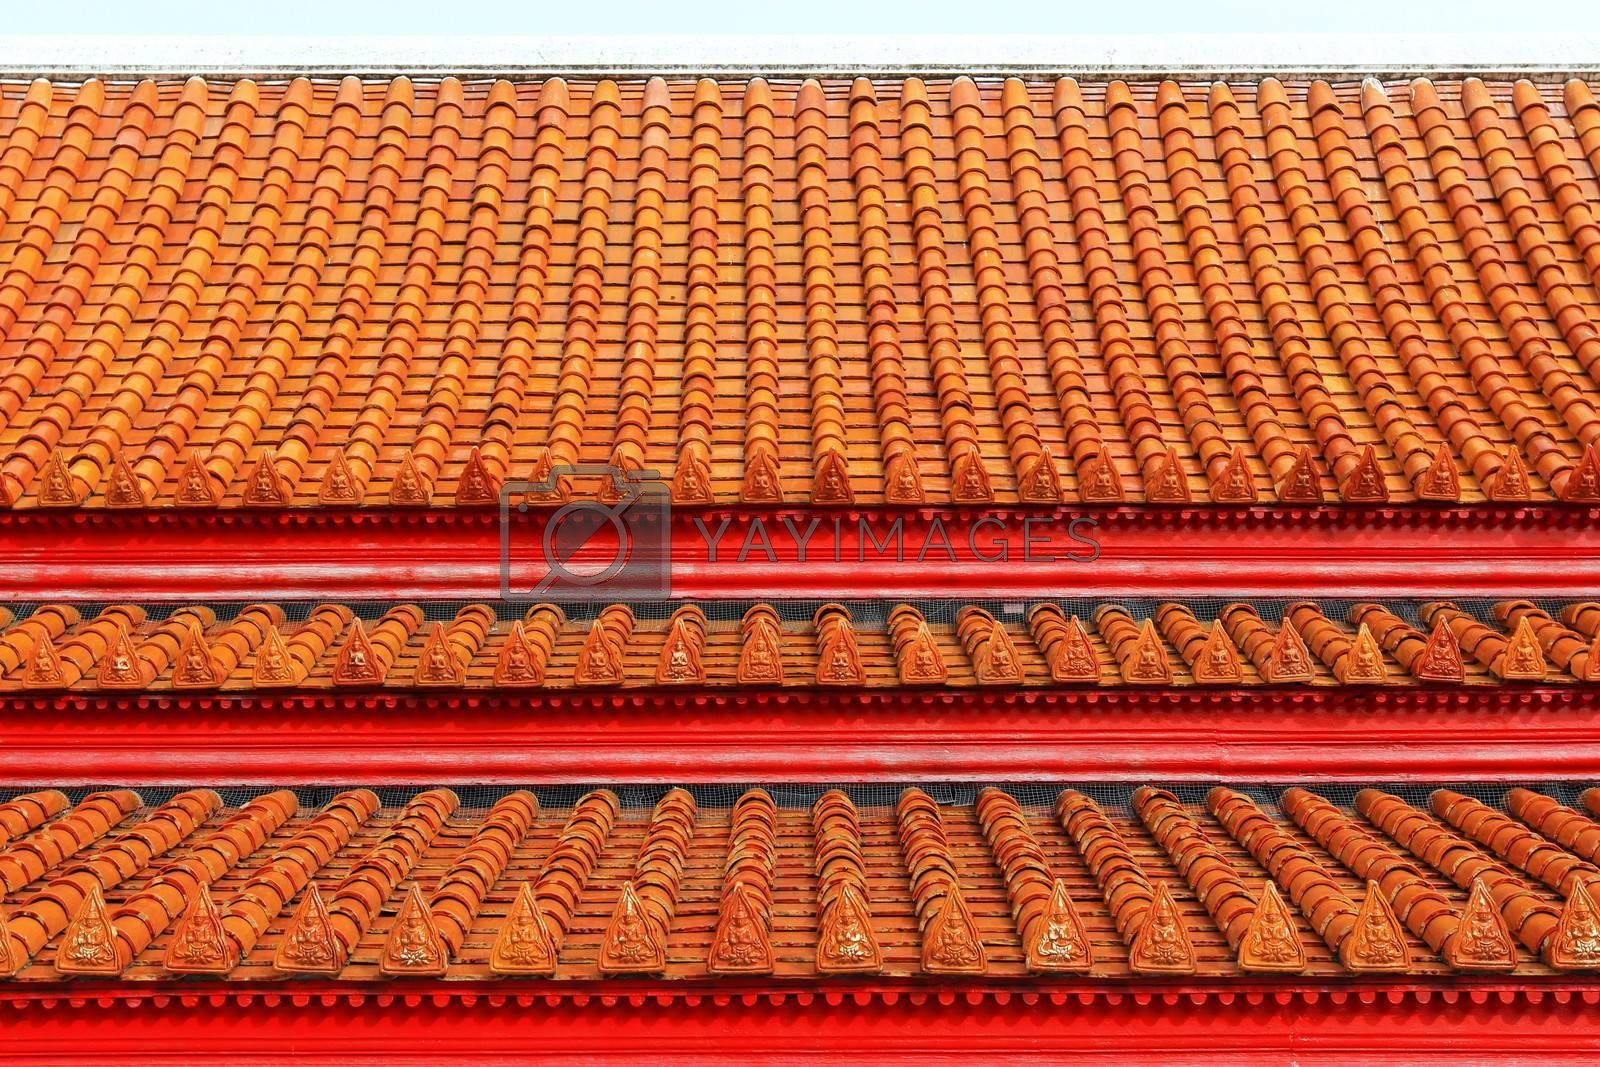 Multi layered roof with the figure of deity holding two palms to perform veneration's glazed tile